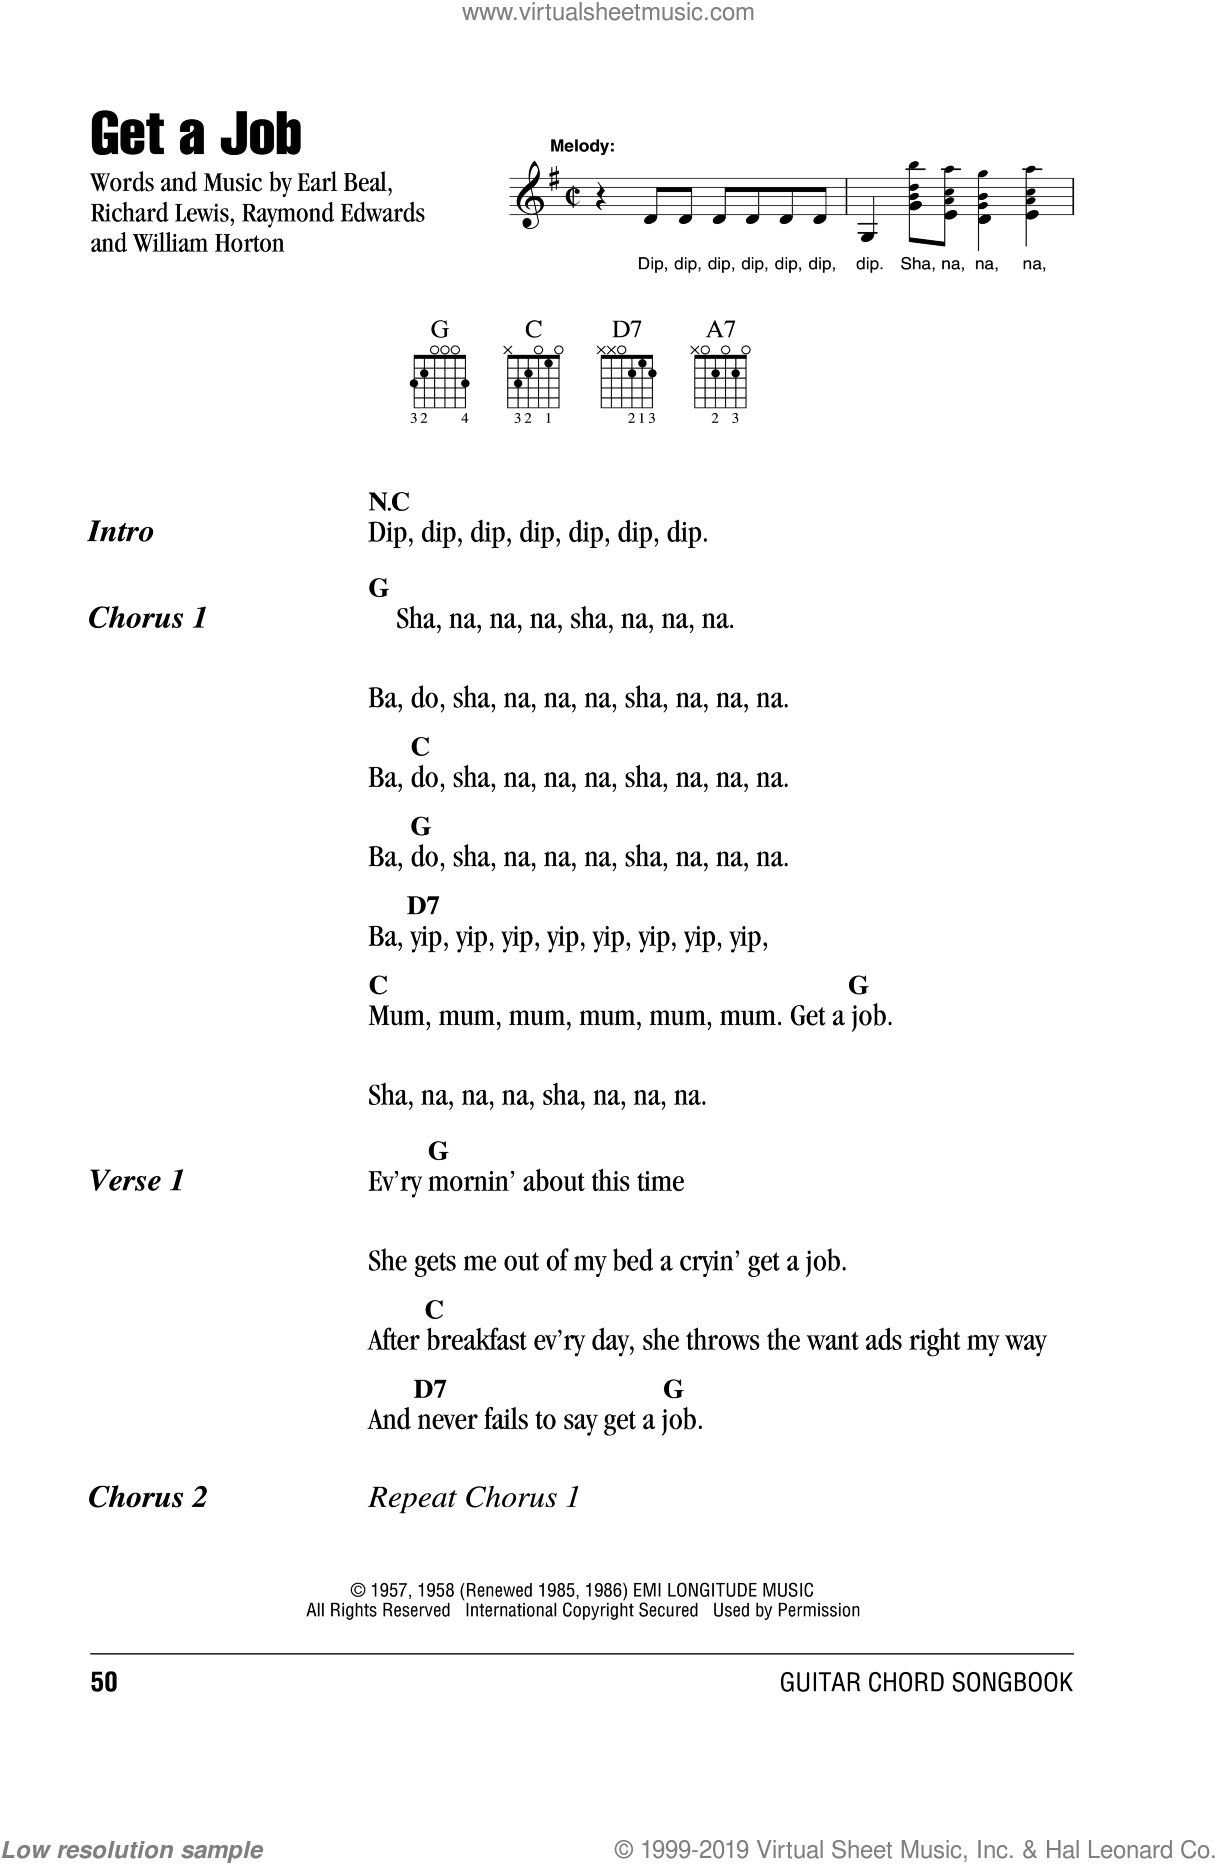 Get A Job sheet music for guitar (chords) by The Silhouettes. Score Image Preview.